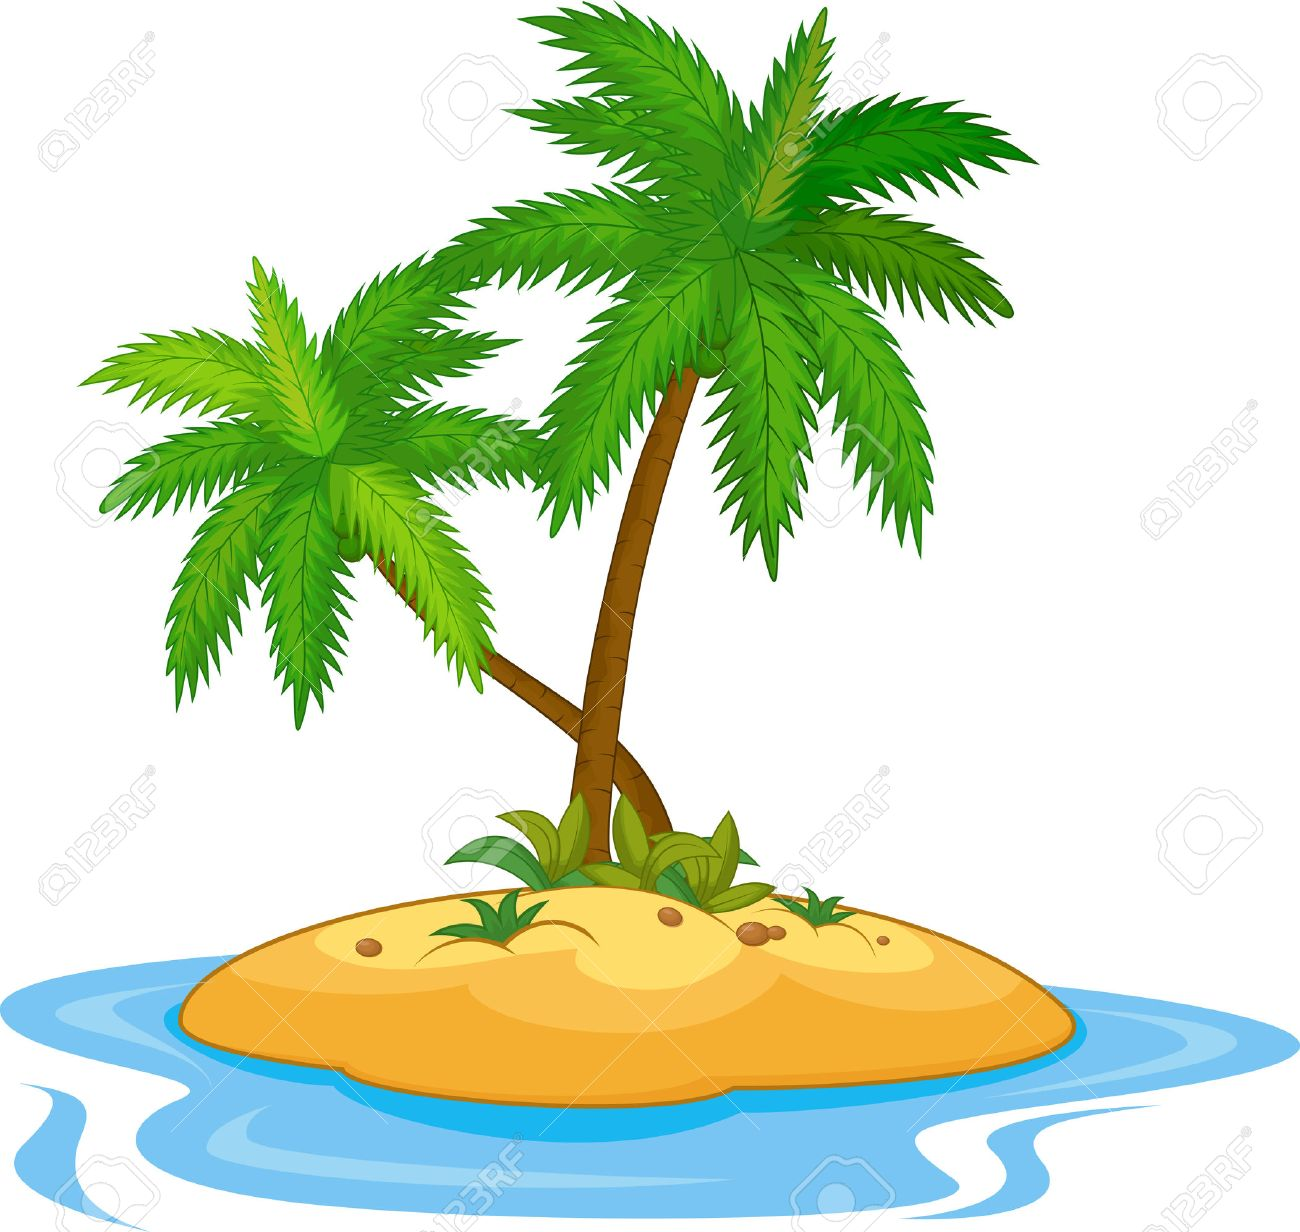 tropical island cartoon royalty free cliparts vectors and stock rh 123rf com free tropical island clipart images